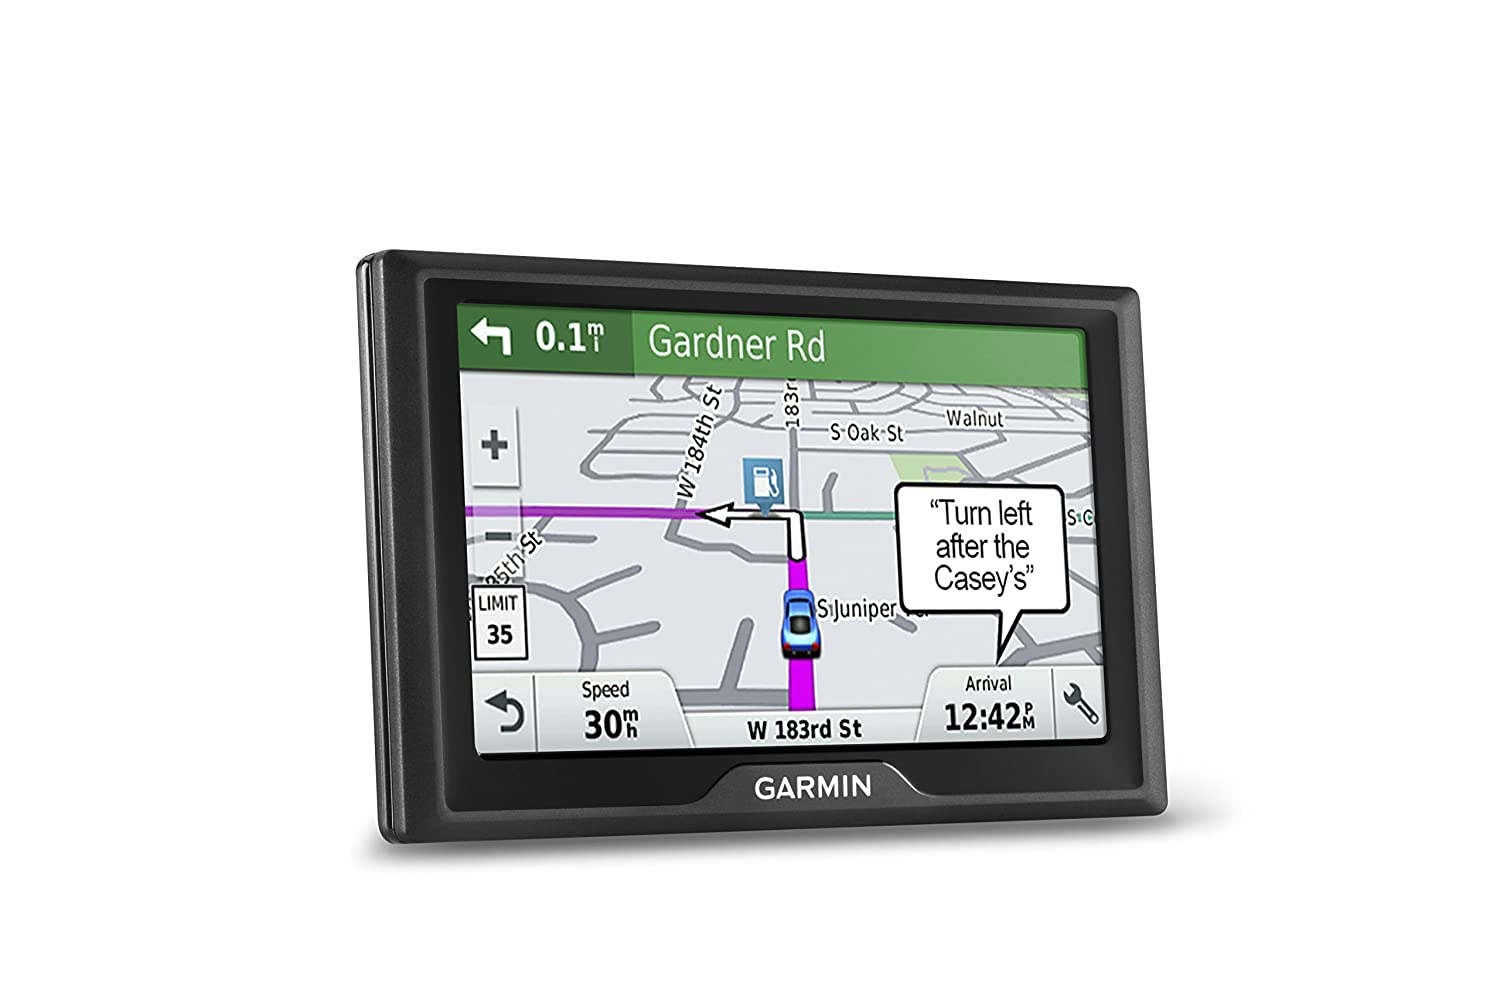 Amazon.com: Garmin Drive 61 USA LM GPS Navigator System with Lifetime Maps,  Spoken Turn-By-Turn Directions, Direct Access, Driver Alerts, TripAdvisor  and ...